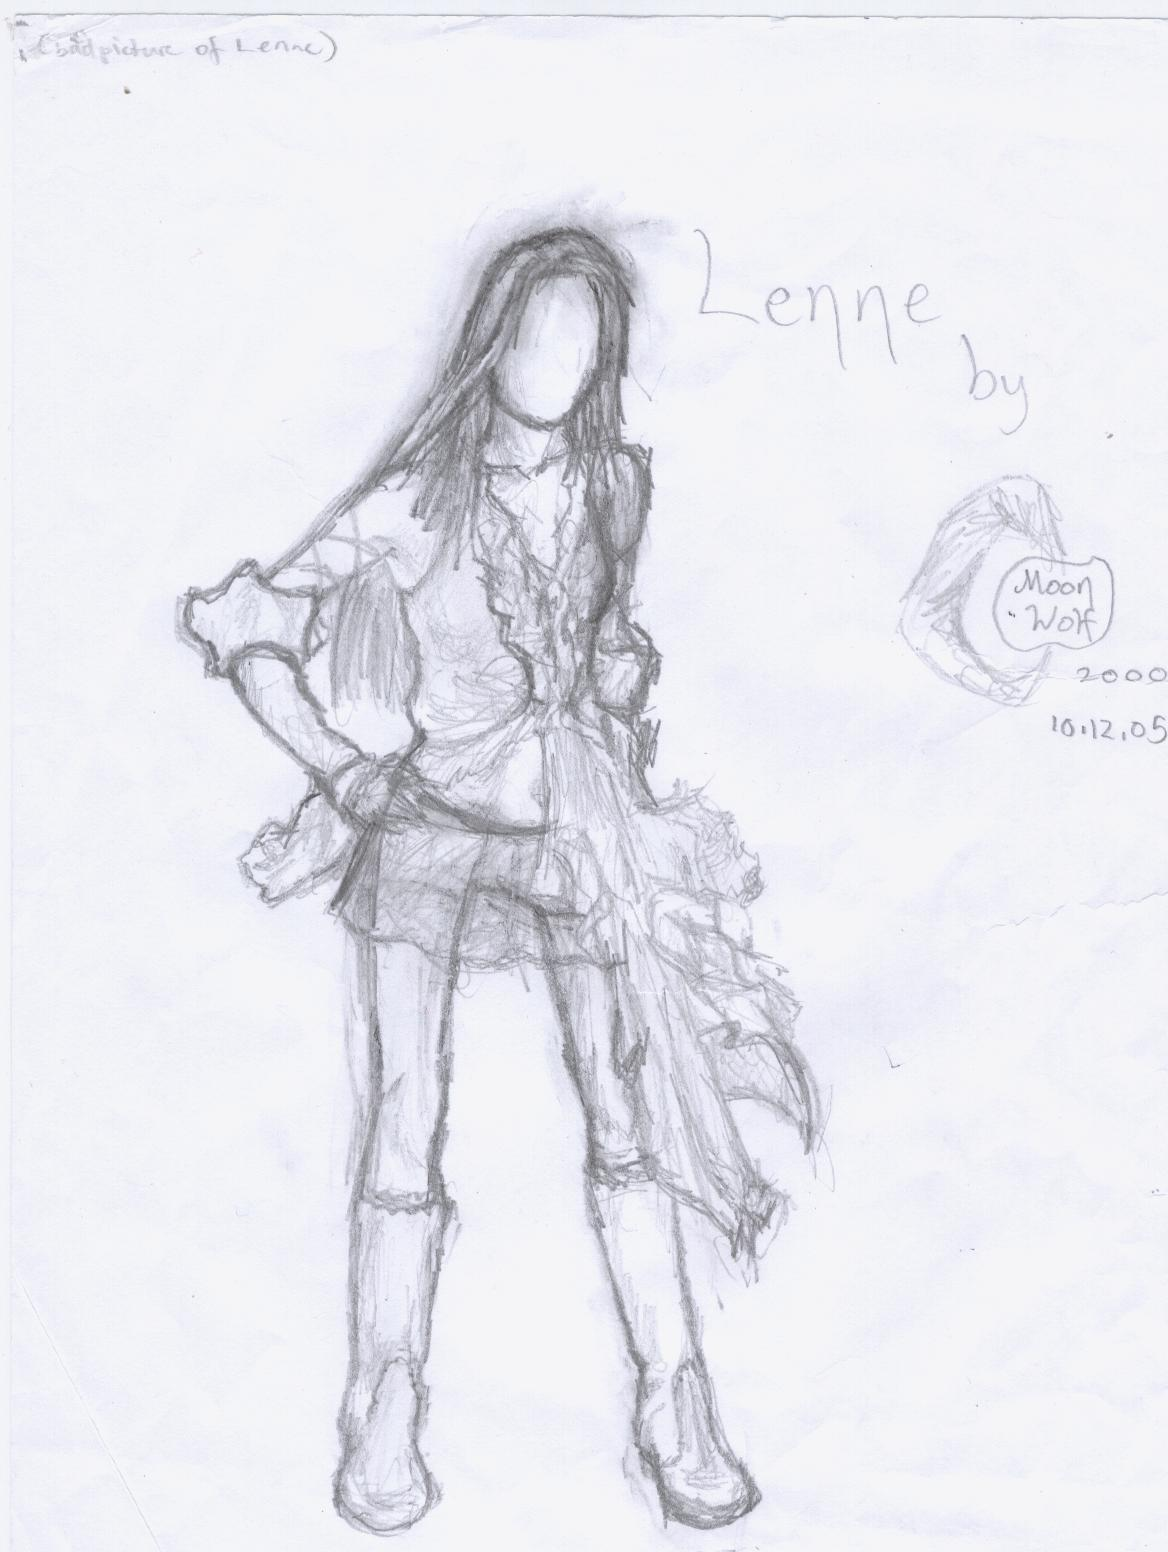 Lenne sketch by MoonWolf2000